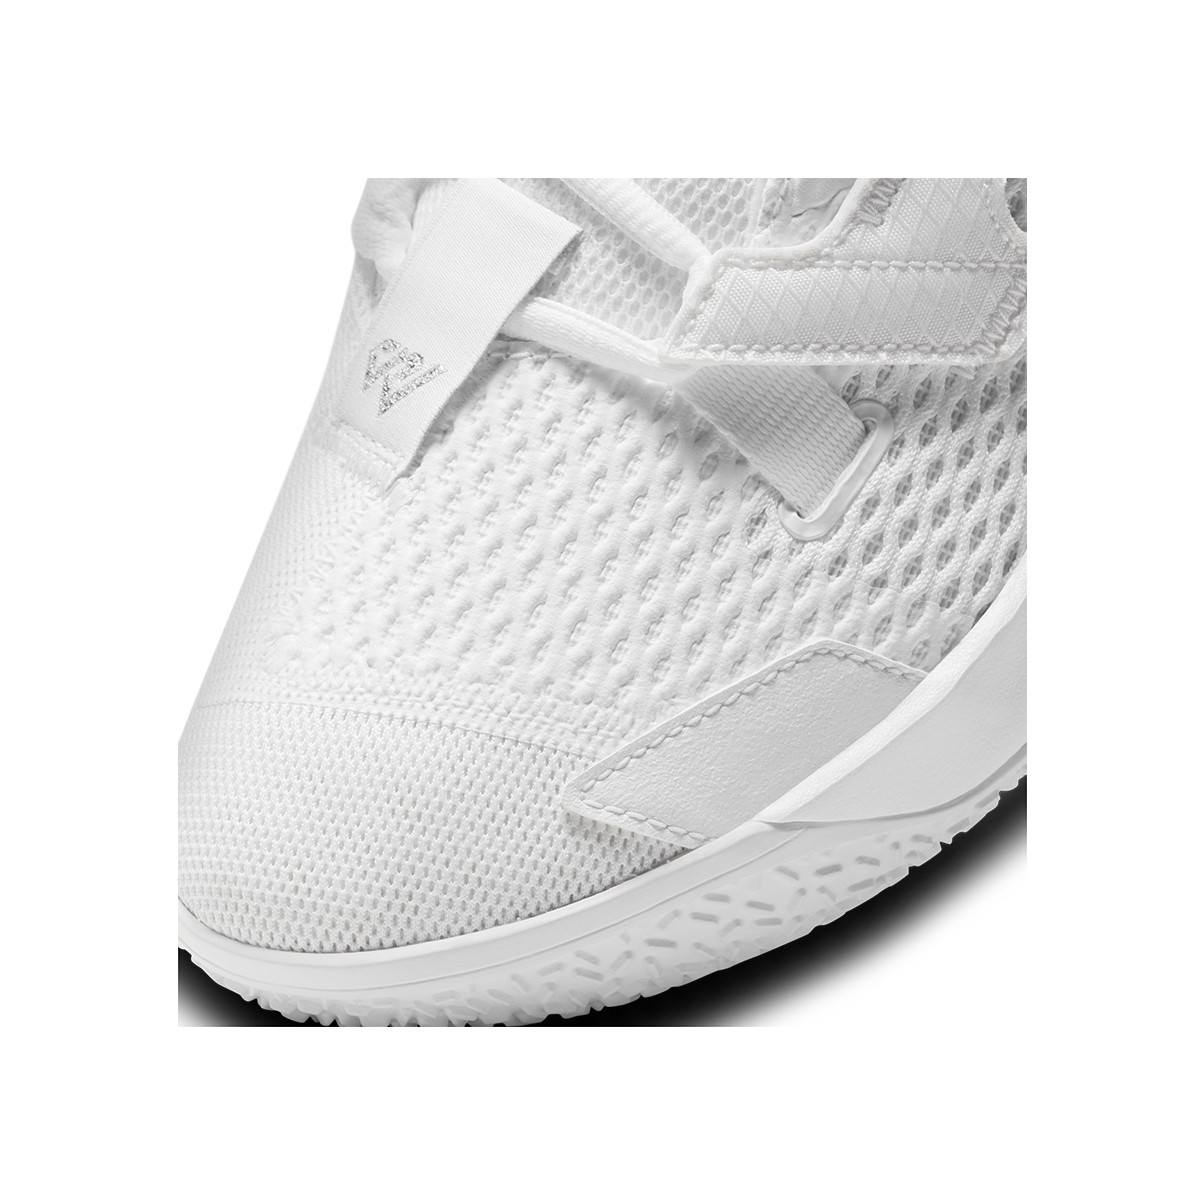 Jordan Why Not Zer0.4 'Triple White'-CQ4230-101